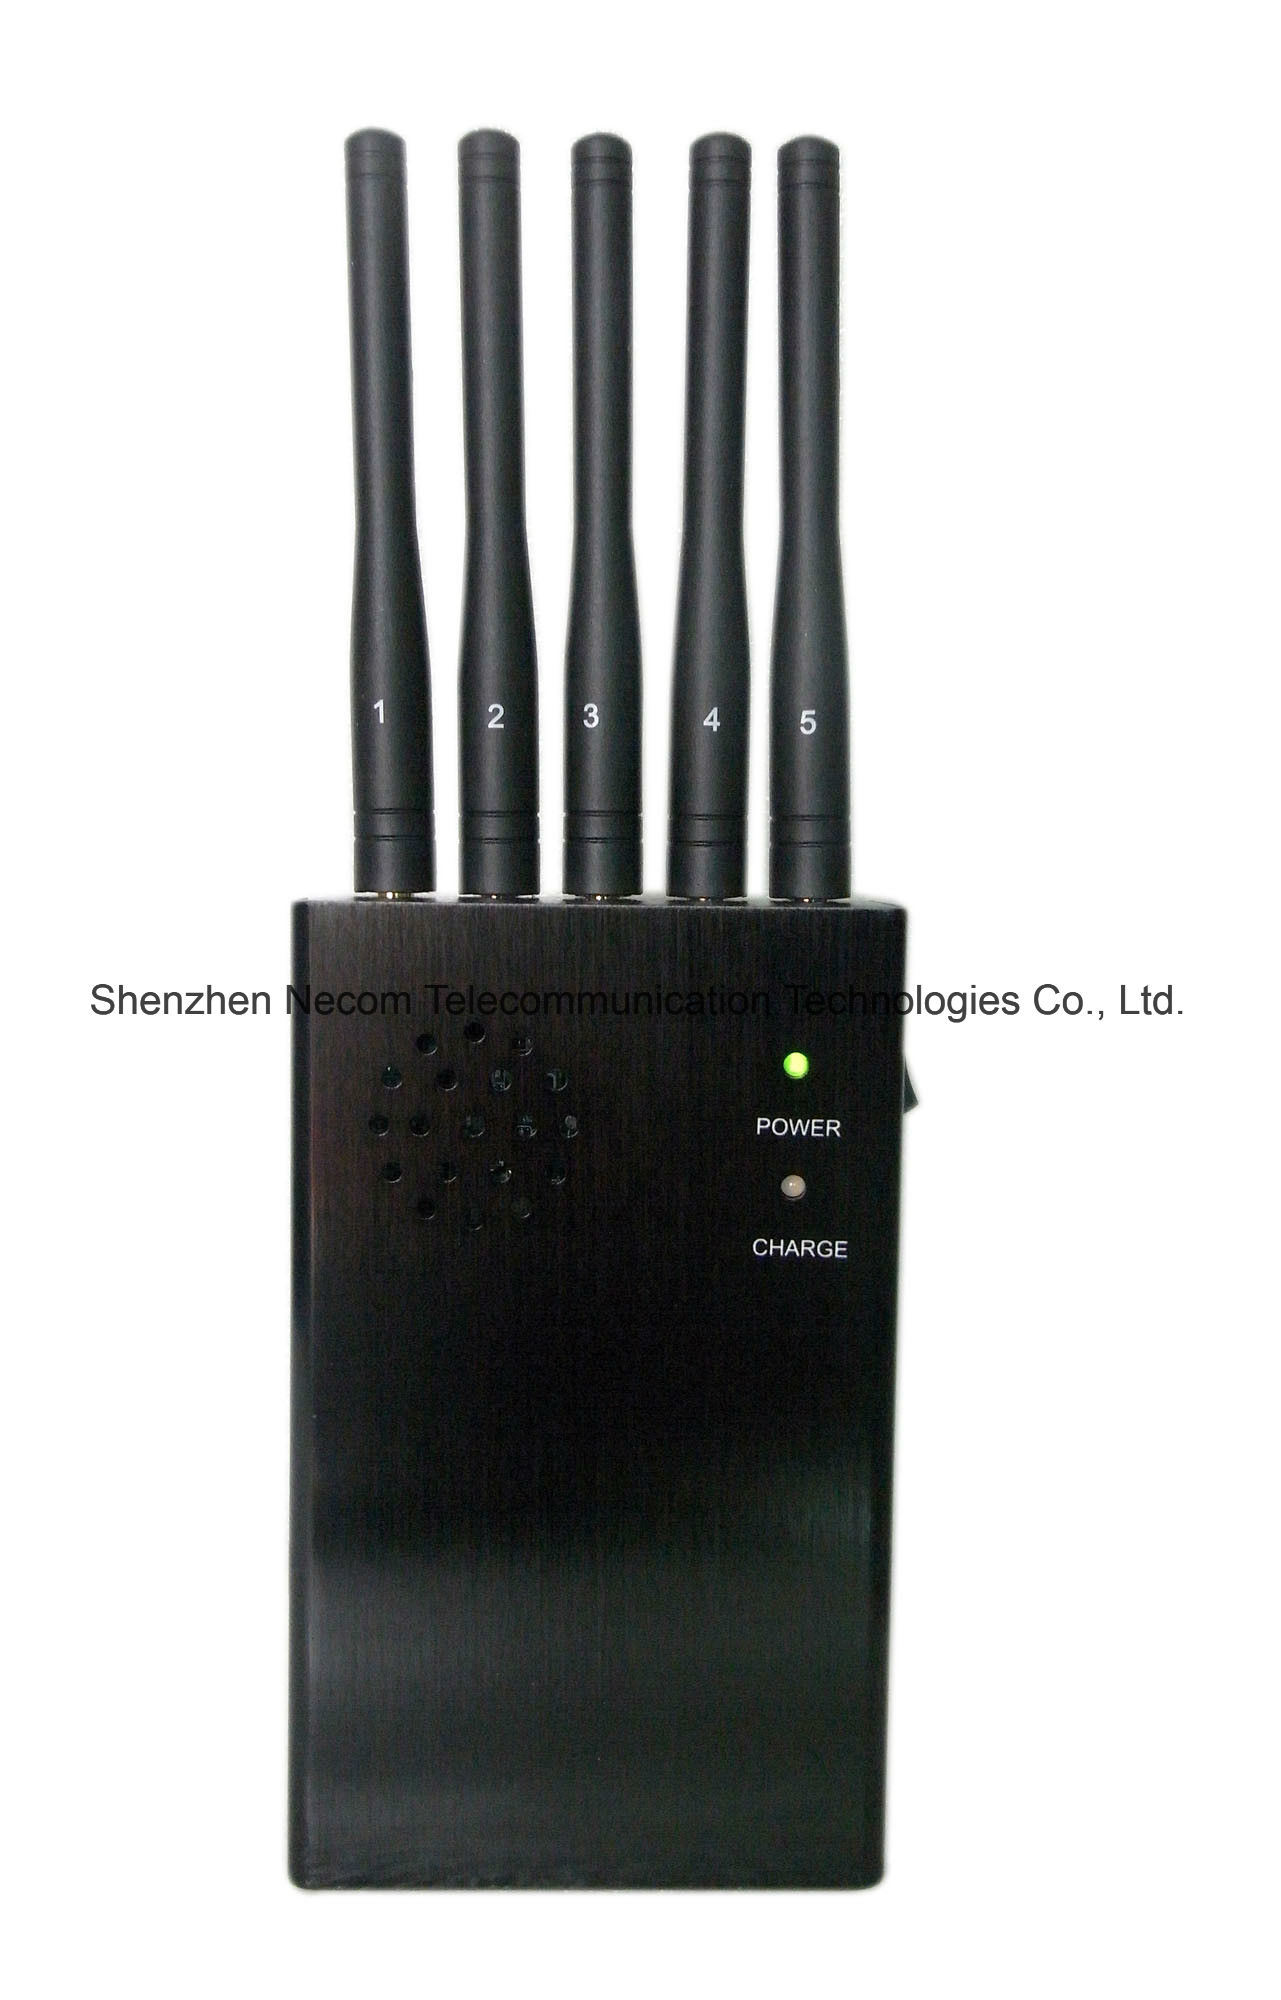 China 5 Antenna Handheld Phone Jammer & WiFi Jammer & GPS Jammer, 5bands Handheld Jammer for Cellphone, Wi-Fi, 433, 315 Remote Control Jammer - China 5 Band Signal Blockers, Five Antennas Jammers